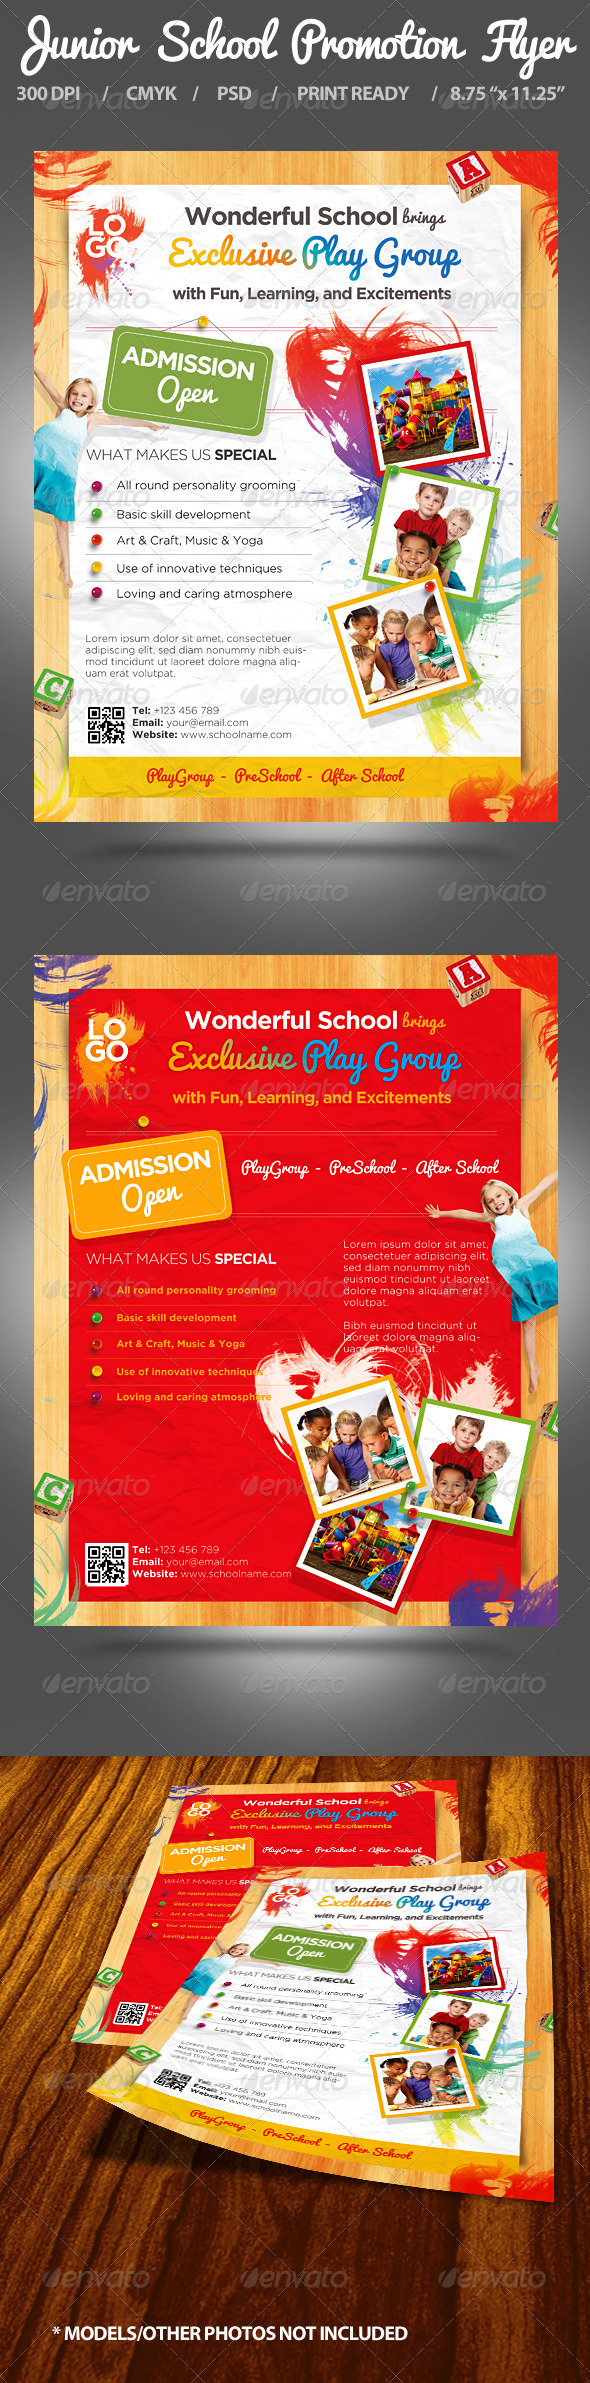 Junior School Promotion Flyers - Miscellaneous Events